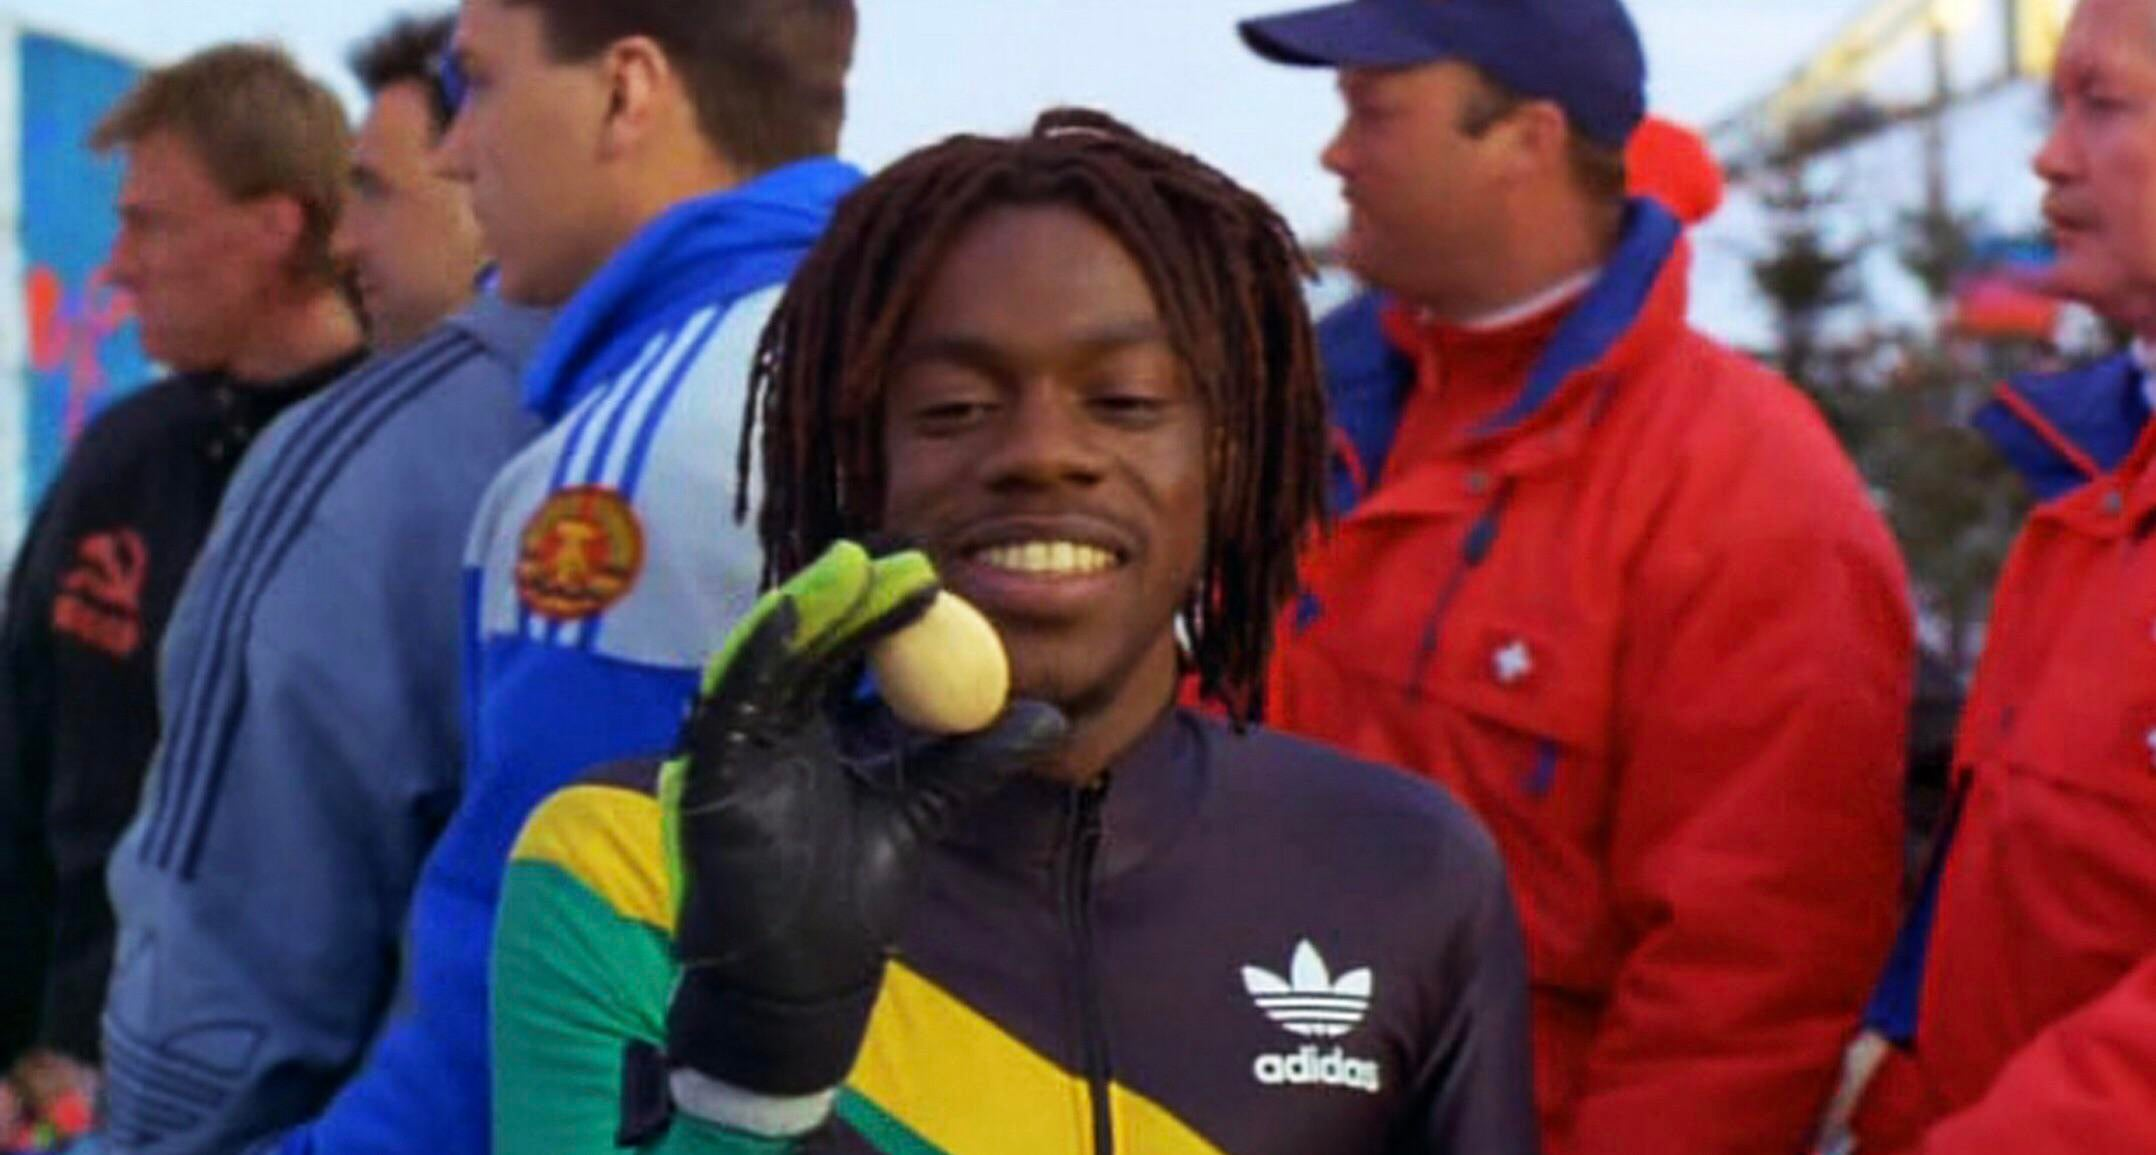 oiz2zibpo8231 10 Cool Facts You Probably Never Knew About Cool Runnings!